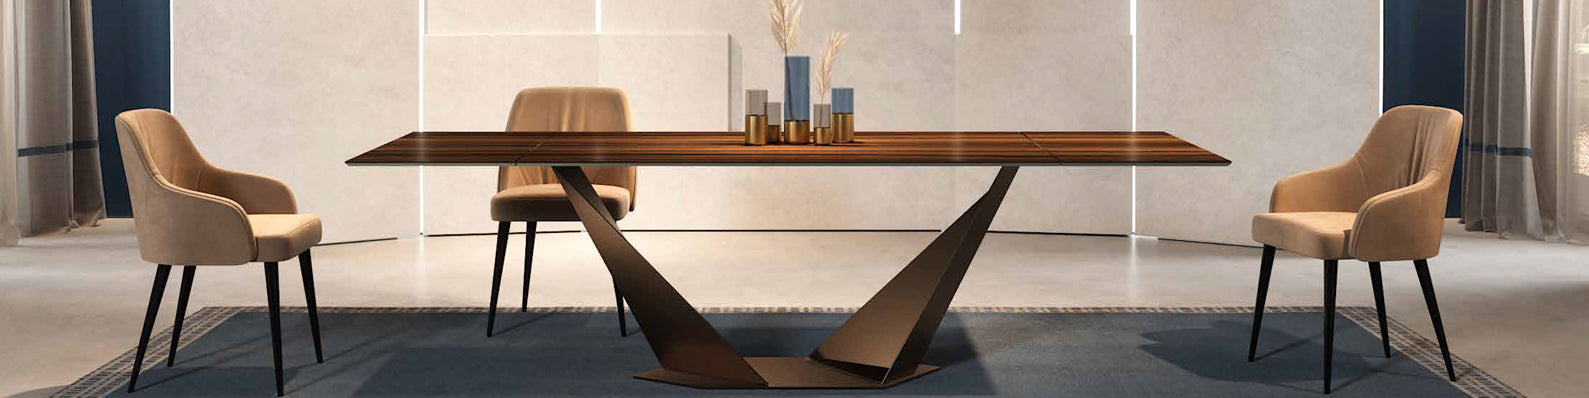 Admirable Las Vegas Nv Contemporary Furniture Store Dining Tables Uwap Interior Chair Design Uwaporg